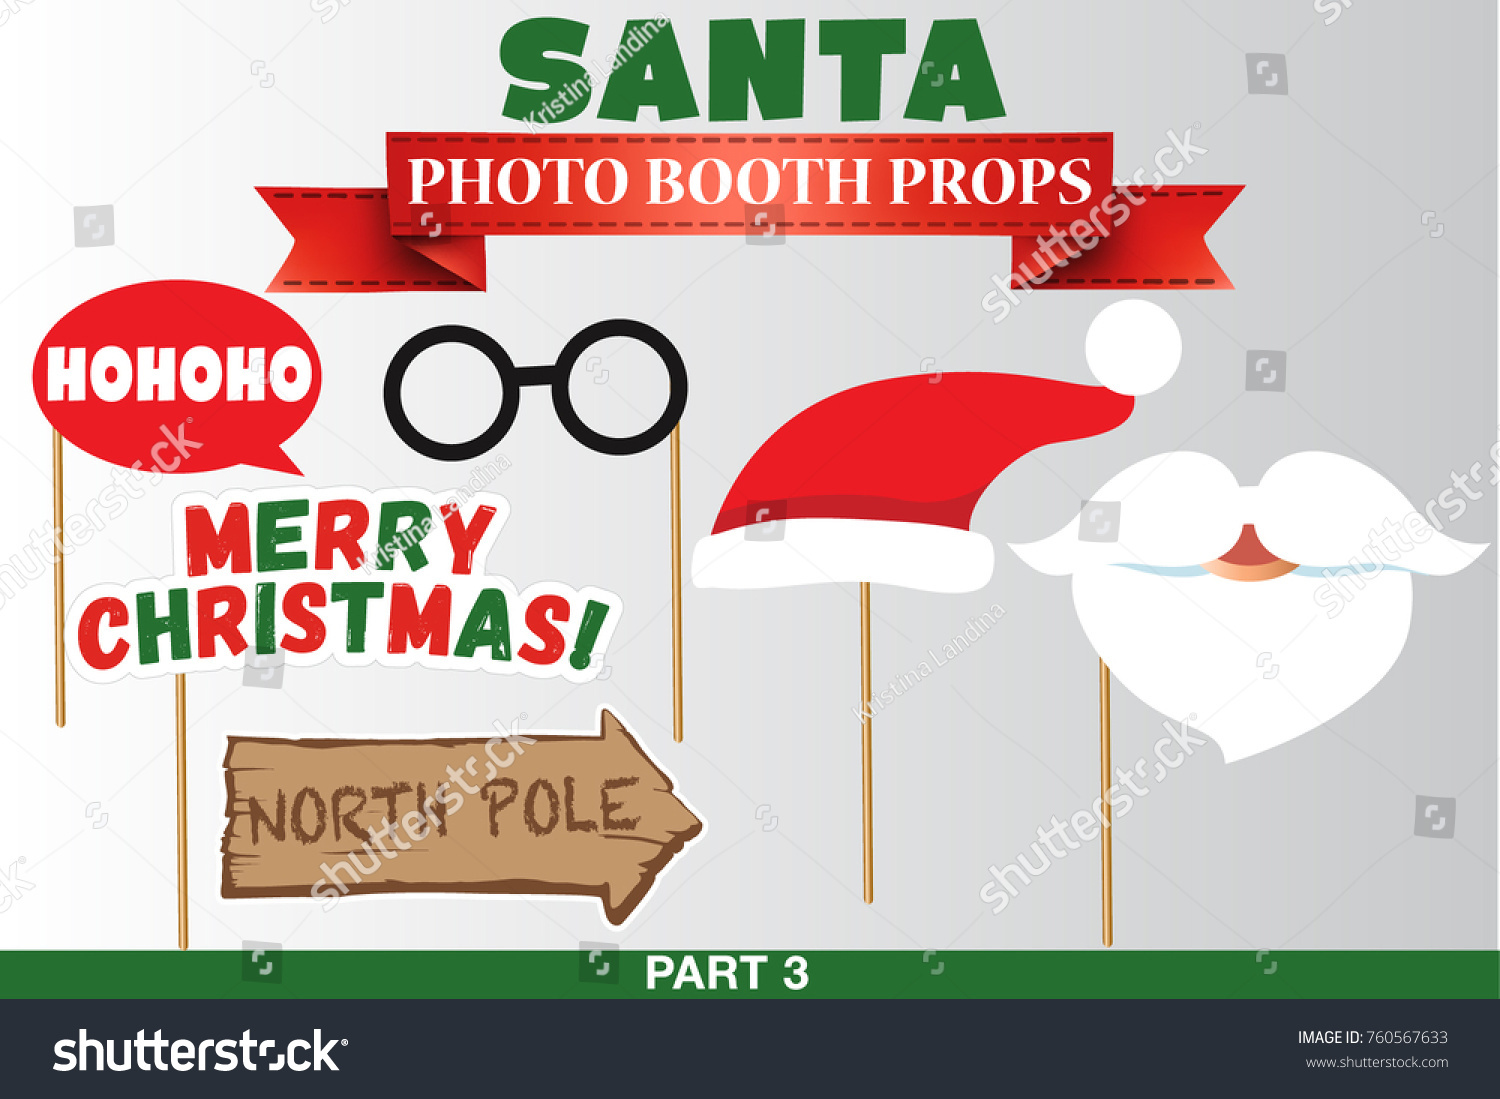 santa merry christmas and new year photo booth props fun party printable speech bubble